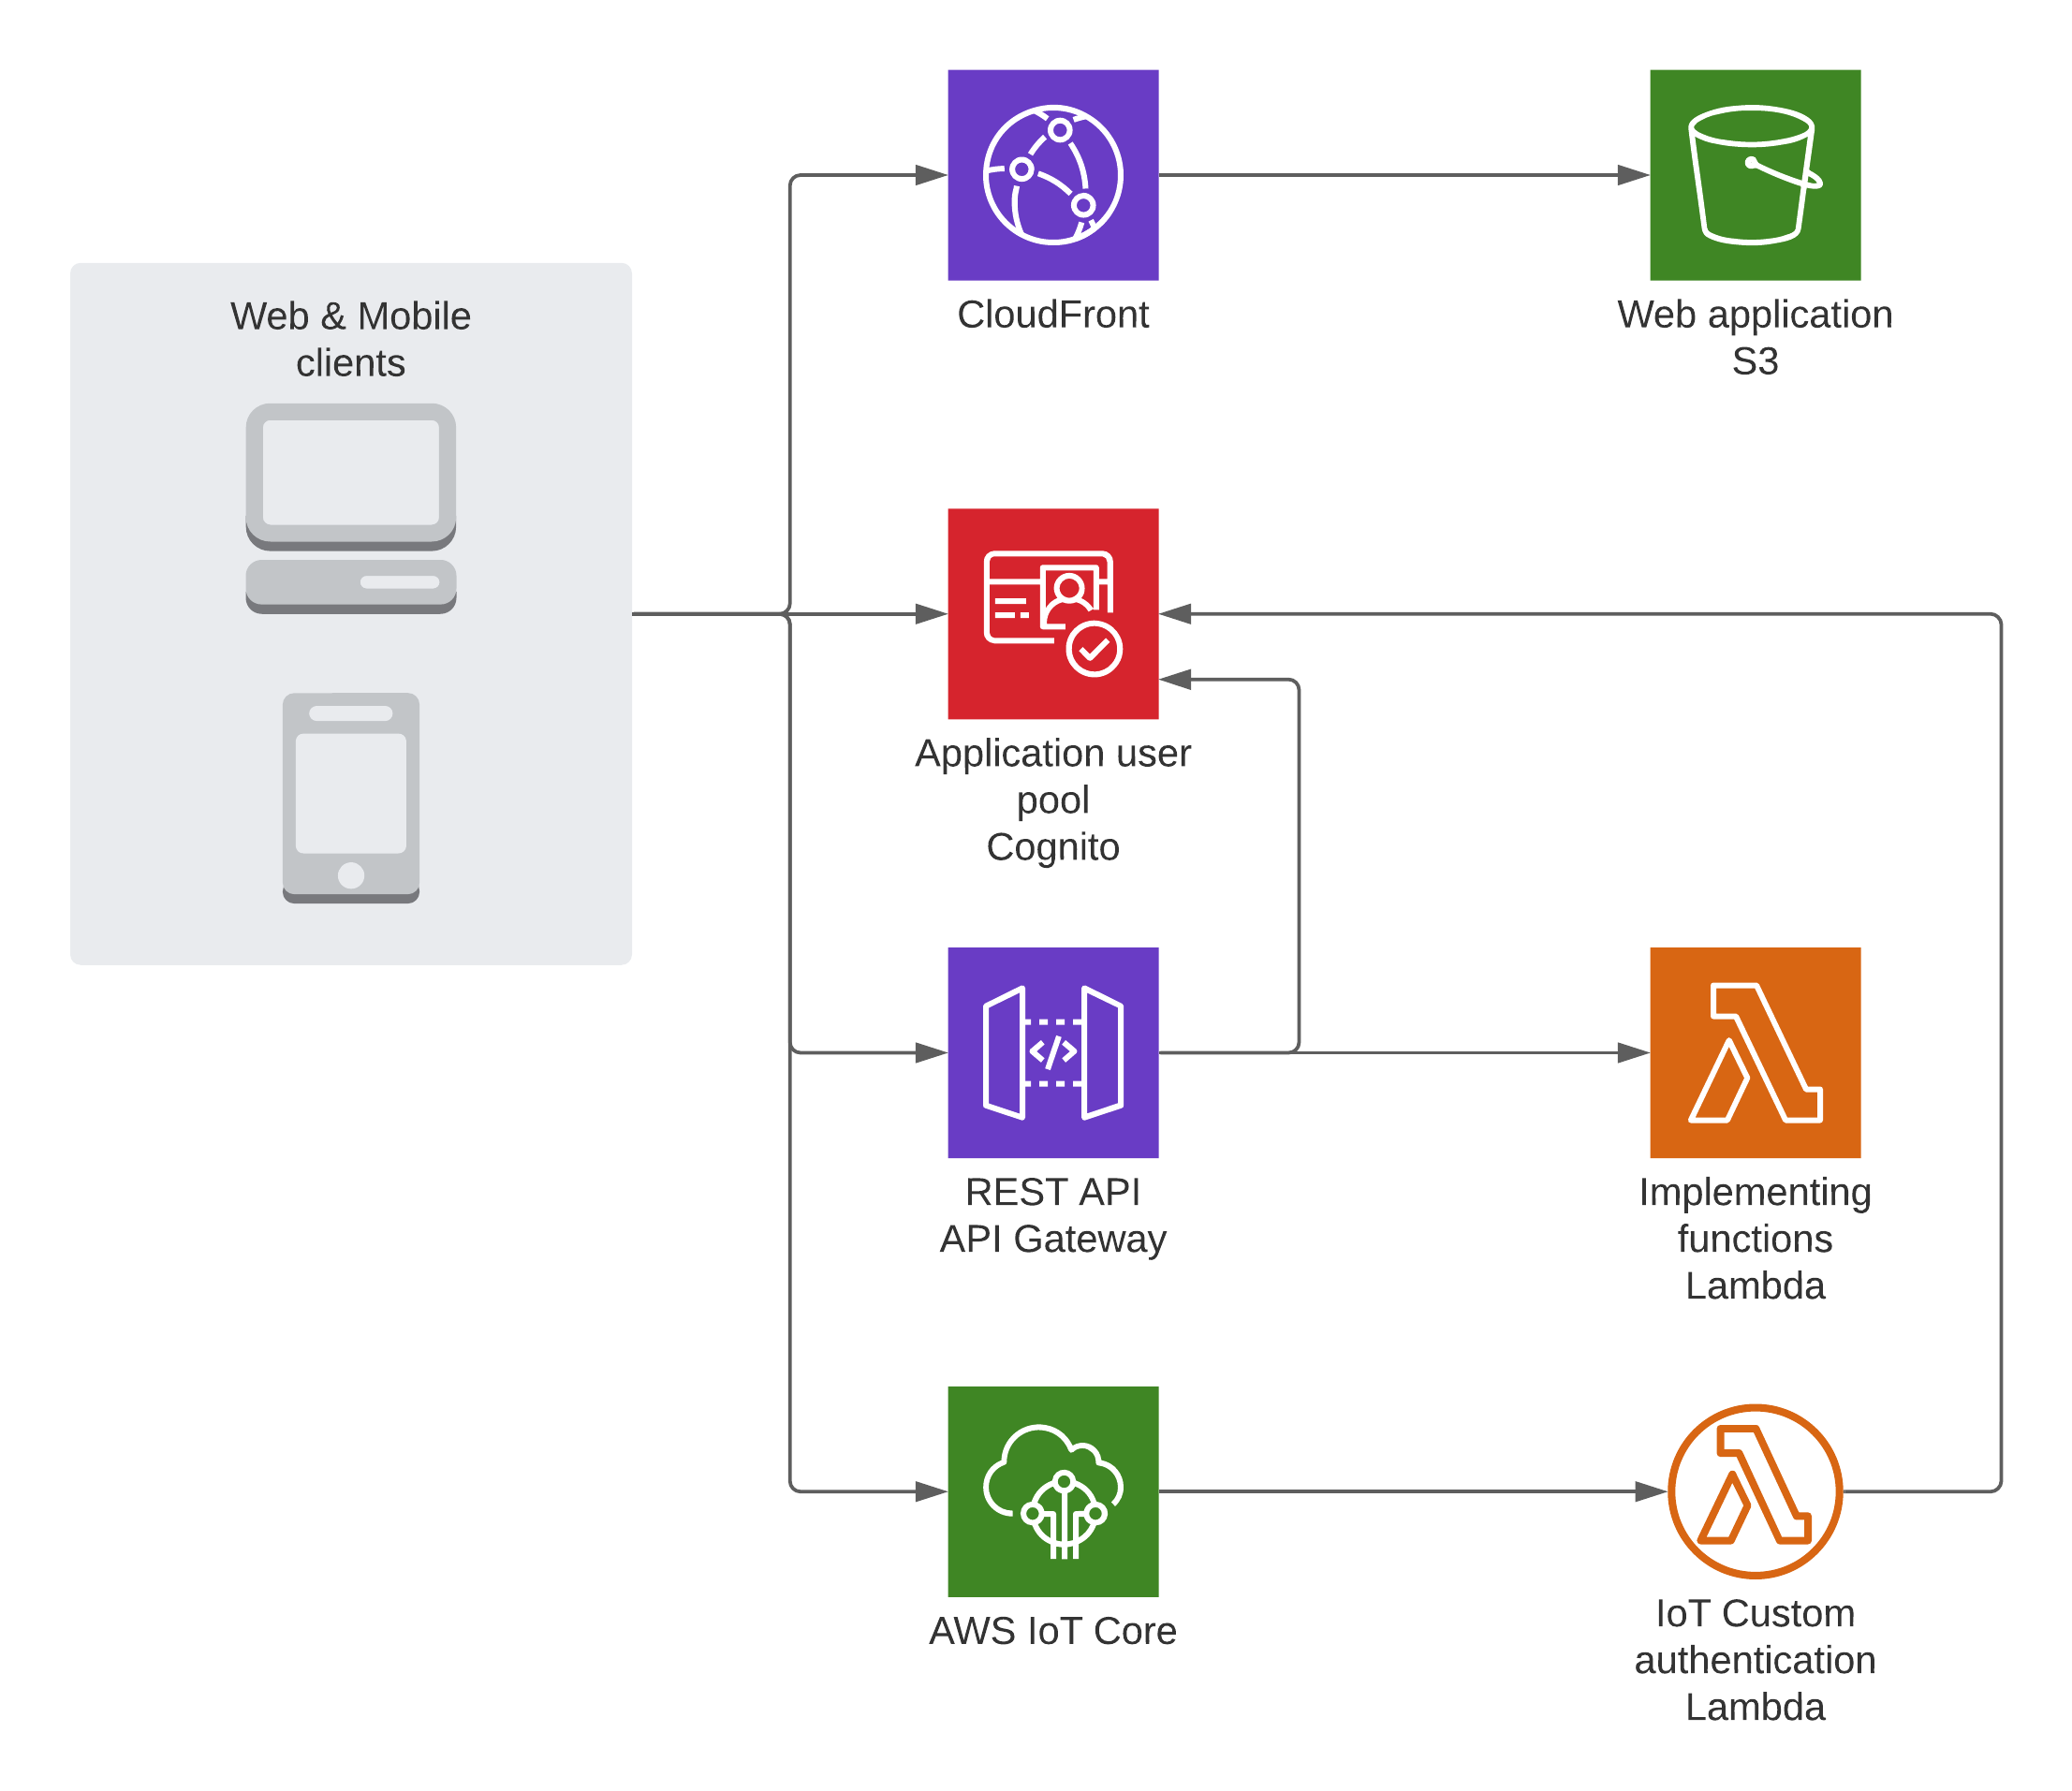 Architecture - with custom authentication